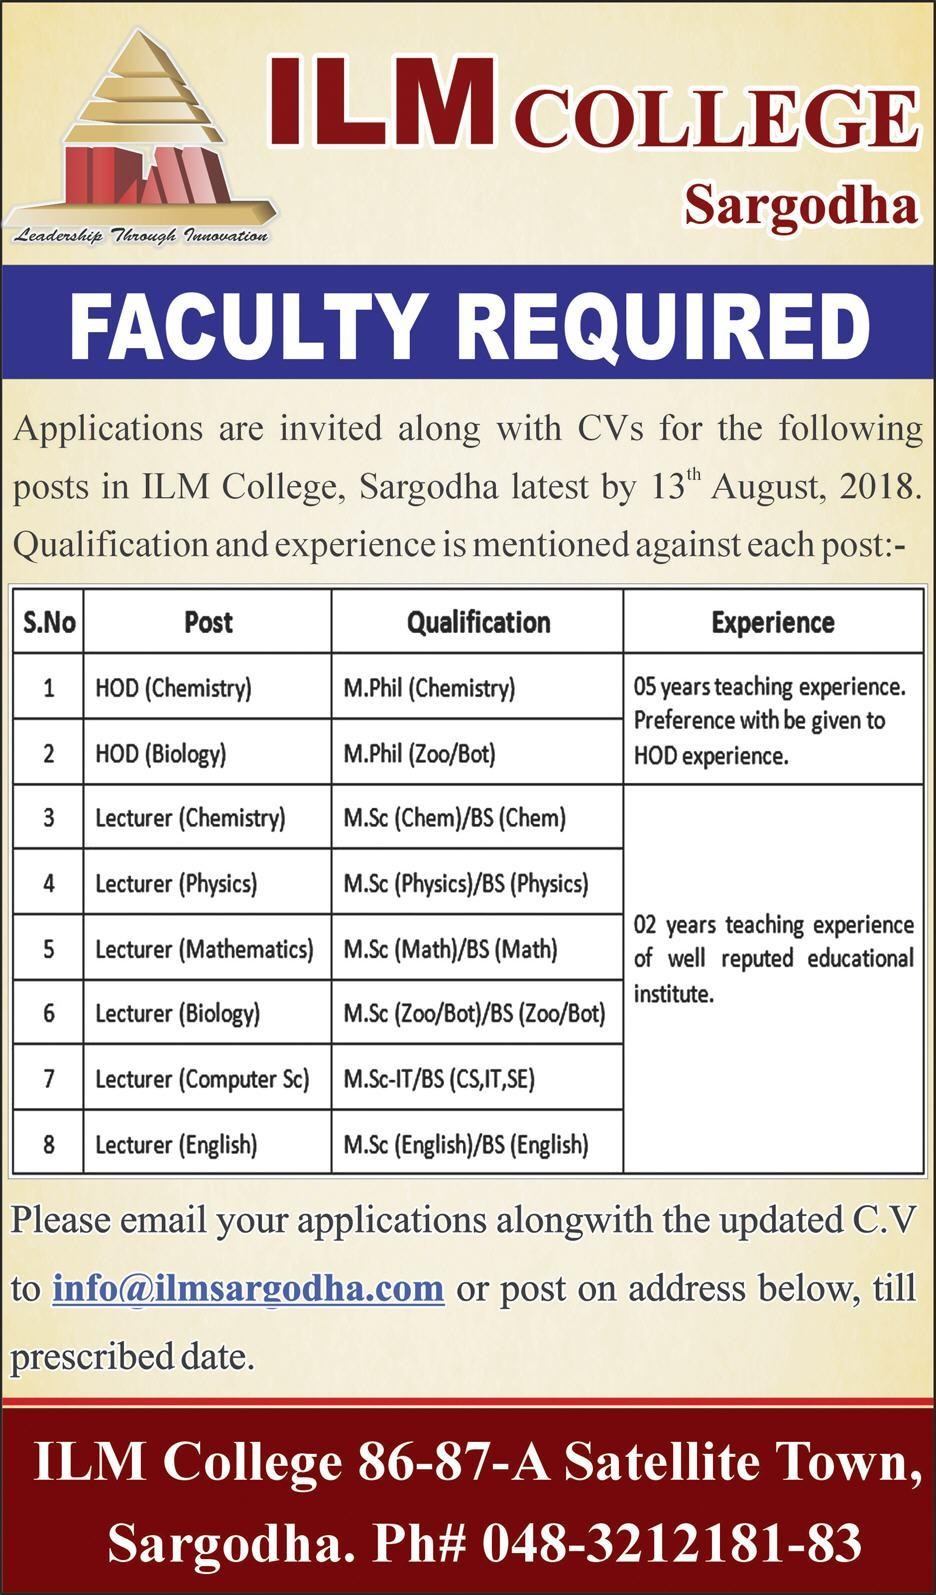 HOD, Lecturers required in ILM College Sargodha